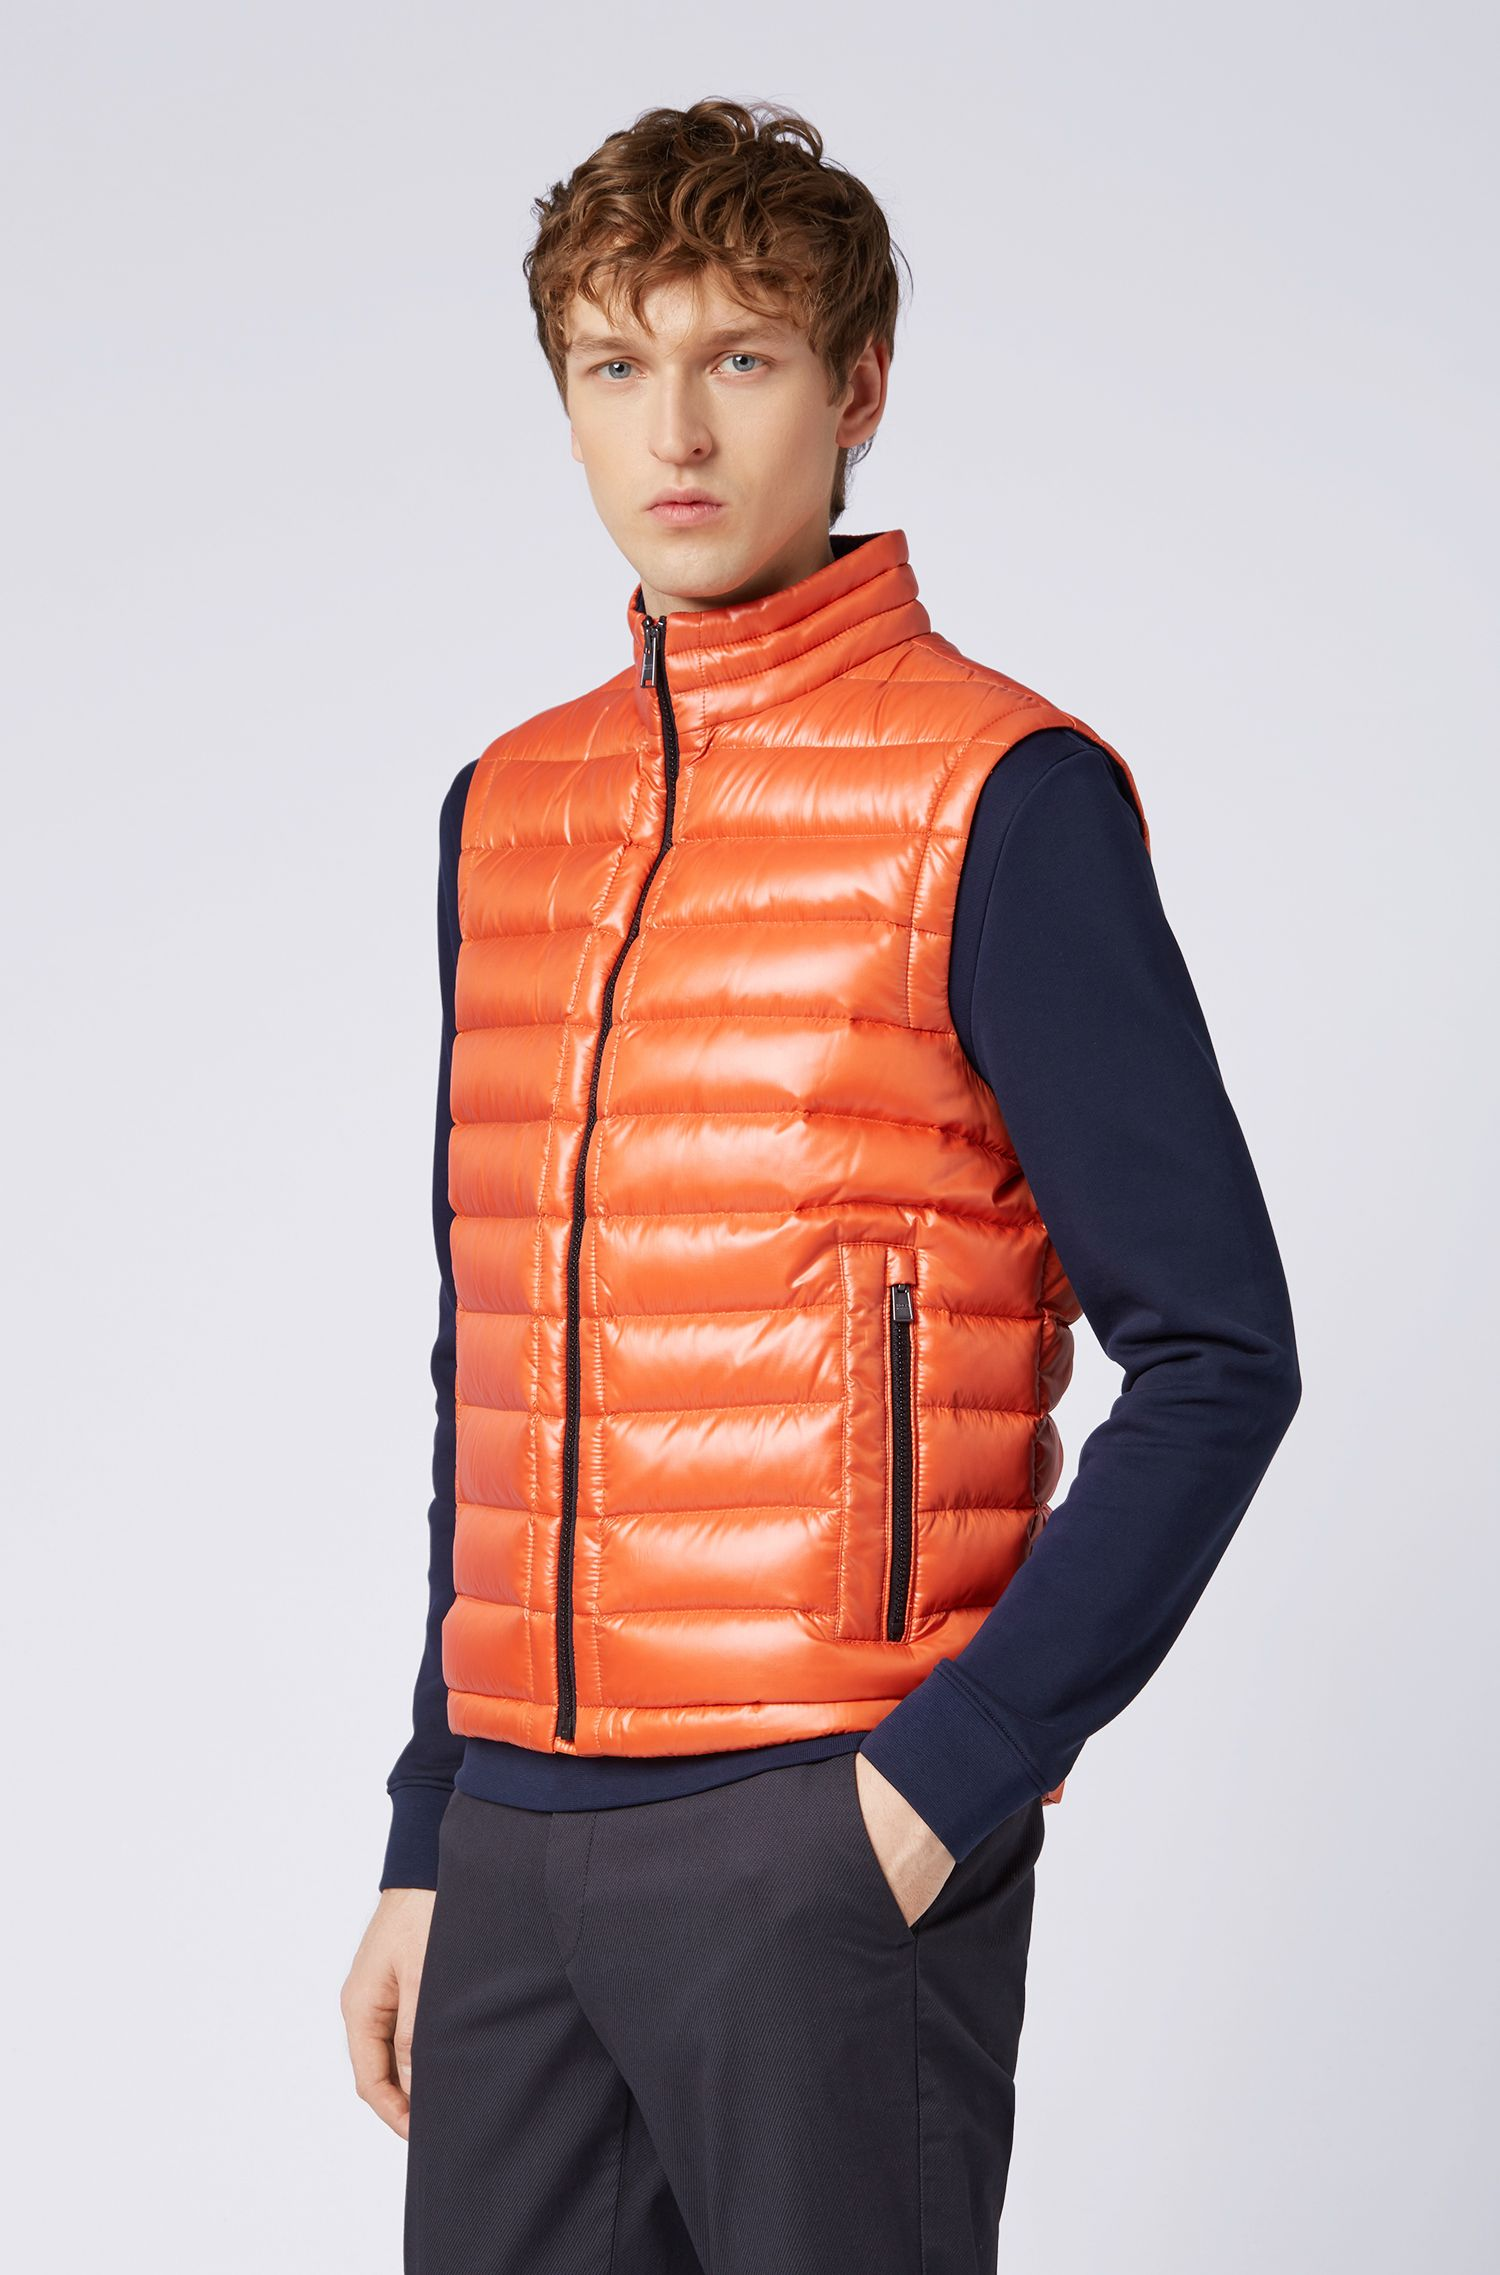 Veste sans manches Regular Fit en tissu déperlant brillant, Orange